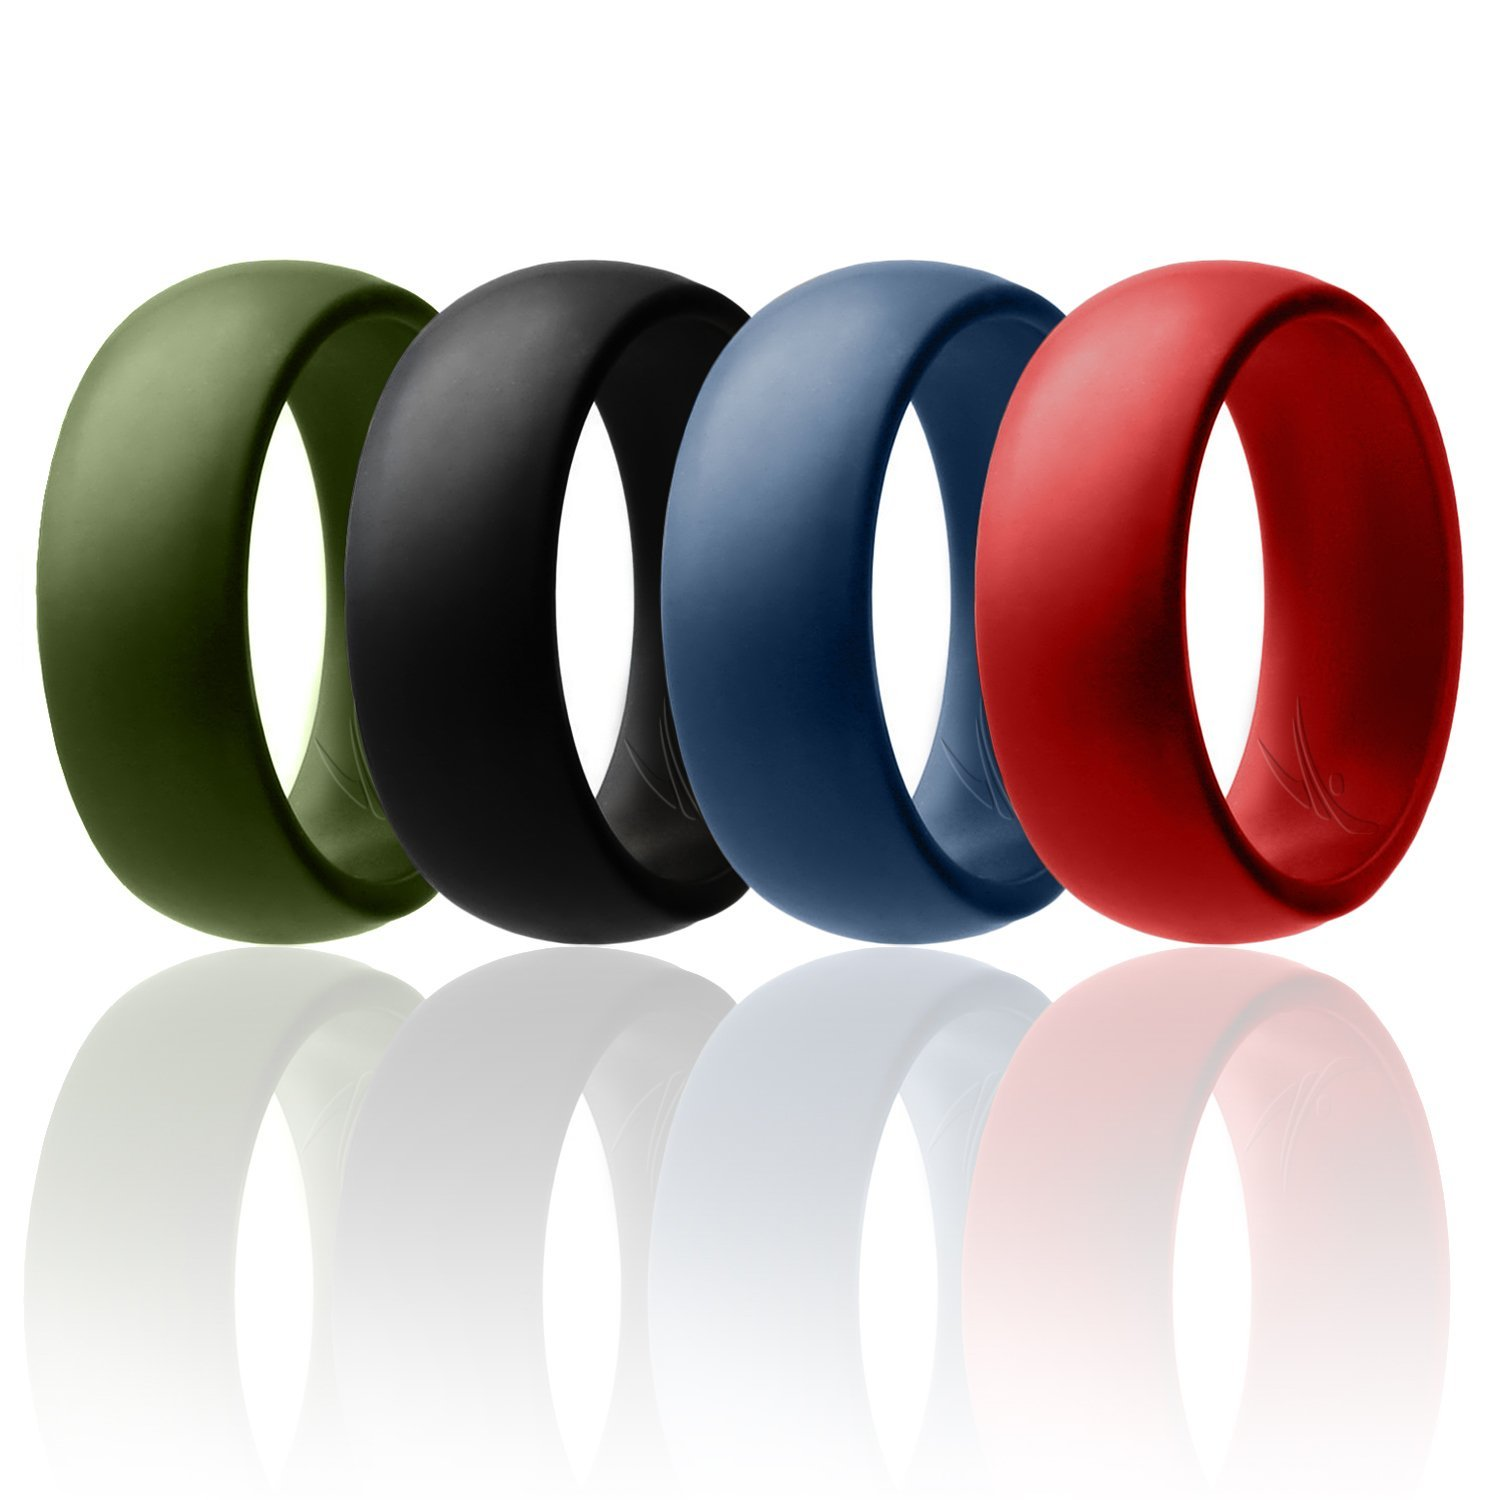 ROQ Silicone Wedding Ring for Men Affordable Silicone Rubber Band, 4 Pack - Black, Blue, Red, Green - Size 12